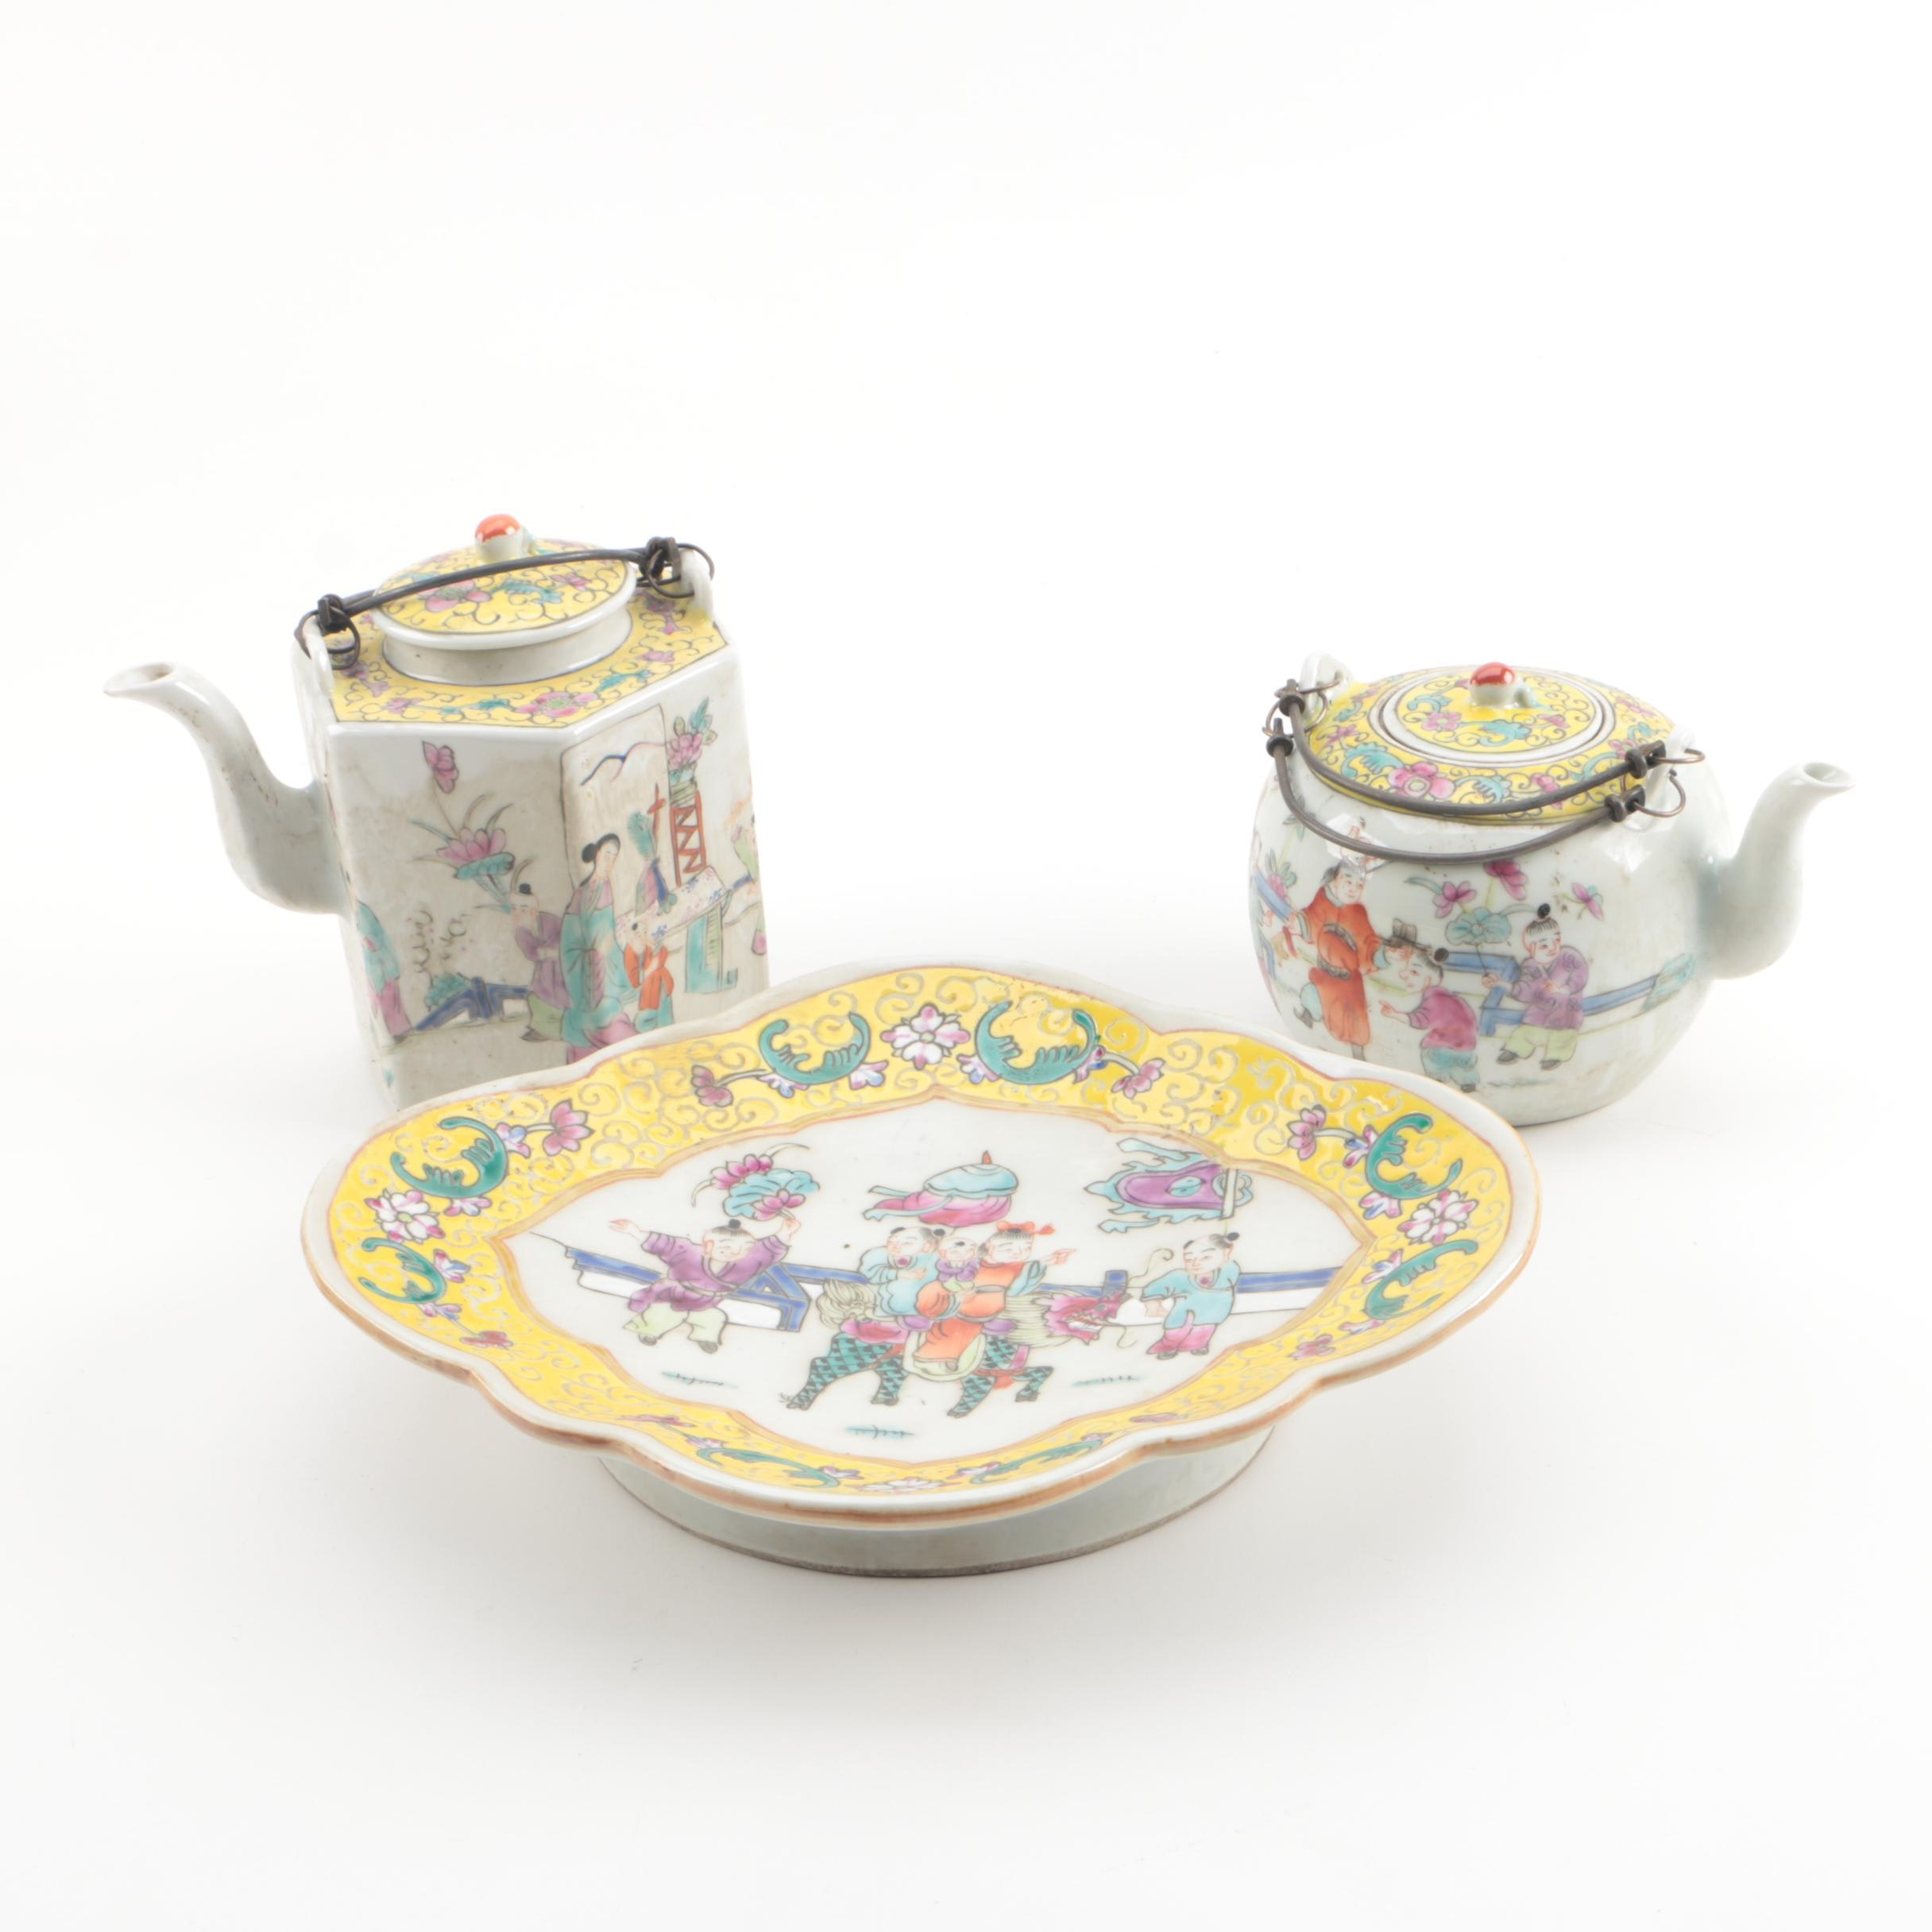 Chinese Polychrome Porcelain Coffee Pot, Teapot, and Footed Dish